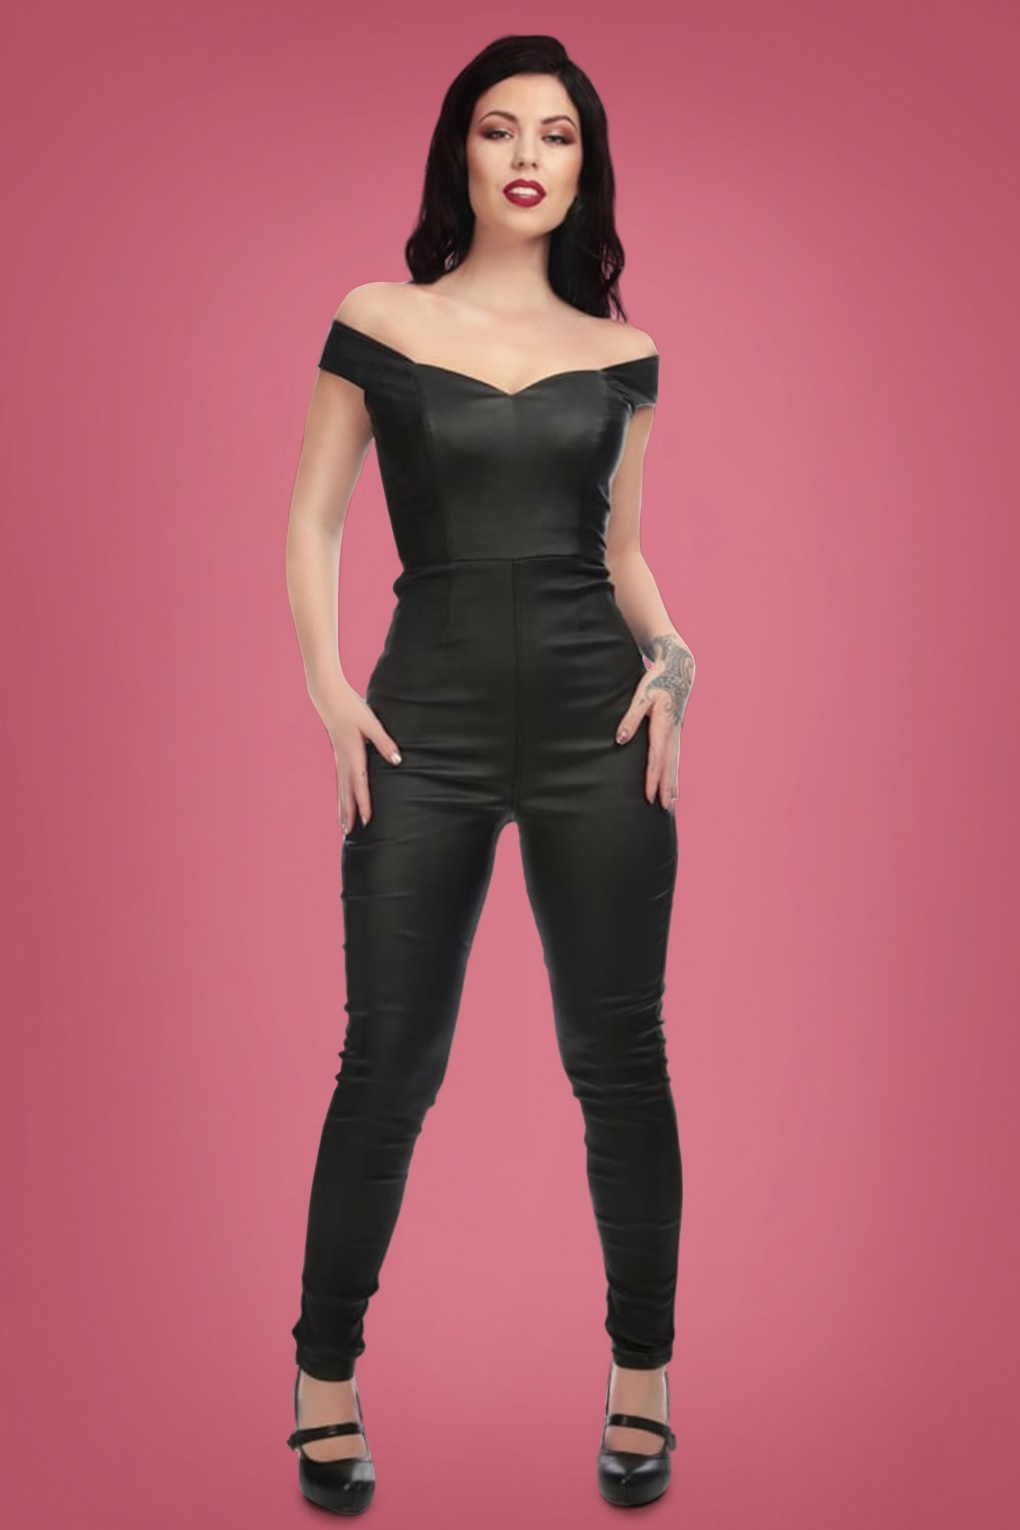 Vintage High Waisted Trousers, Sailor Pants, Jeans 50s Connie Leather Look Jumpsuit in Black £60.19 AT vintagedancer.com